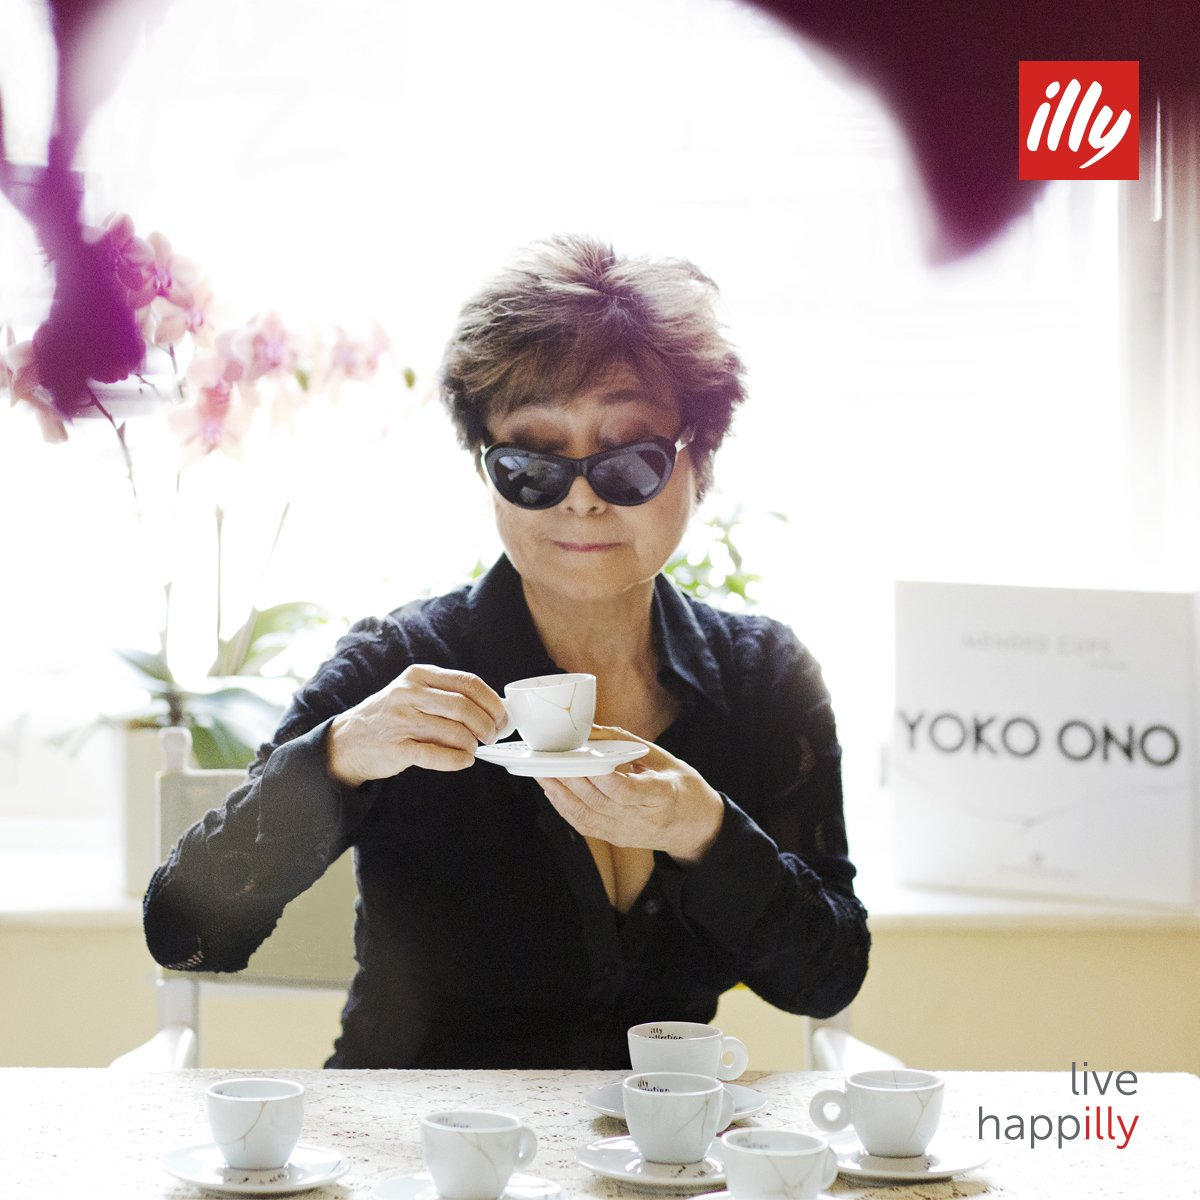 Healing the broken and preserving the unbroken: @YokoOno's artworks for illy Art Collection https://t.co/gprEg0jhnR https://t.co/xXVLrudUvG